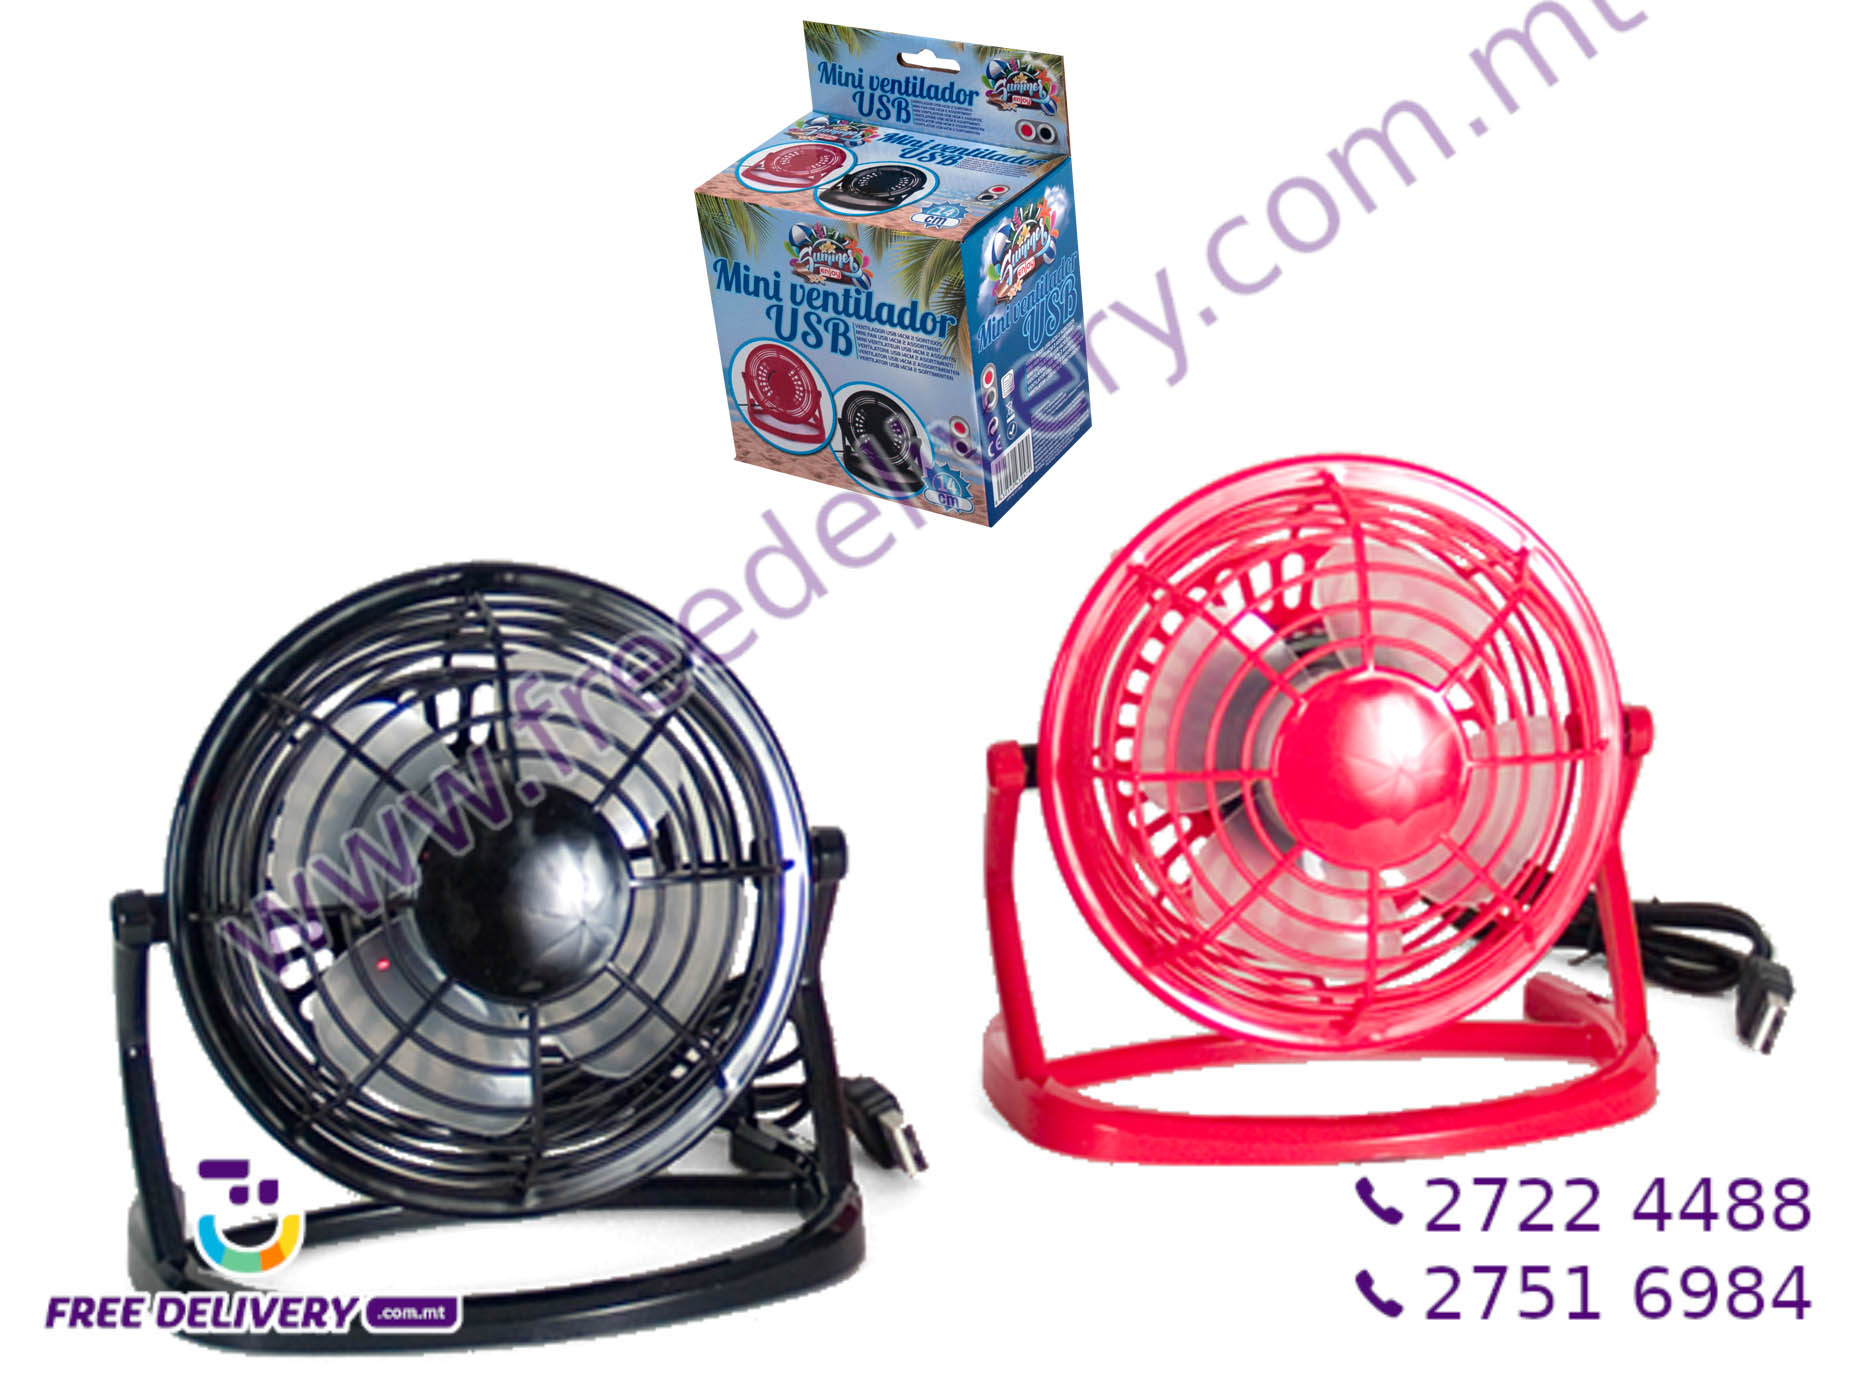 MINI USB TABLE FAN 14CM GE430579